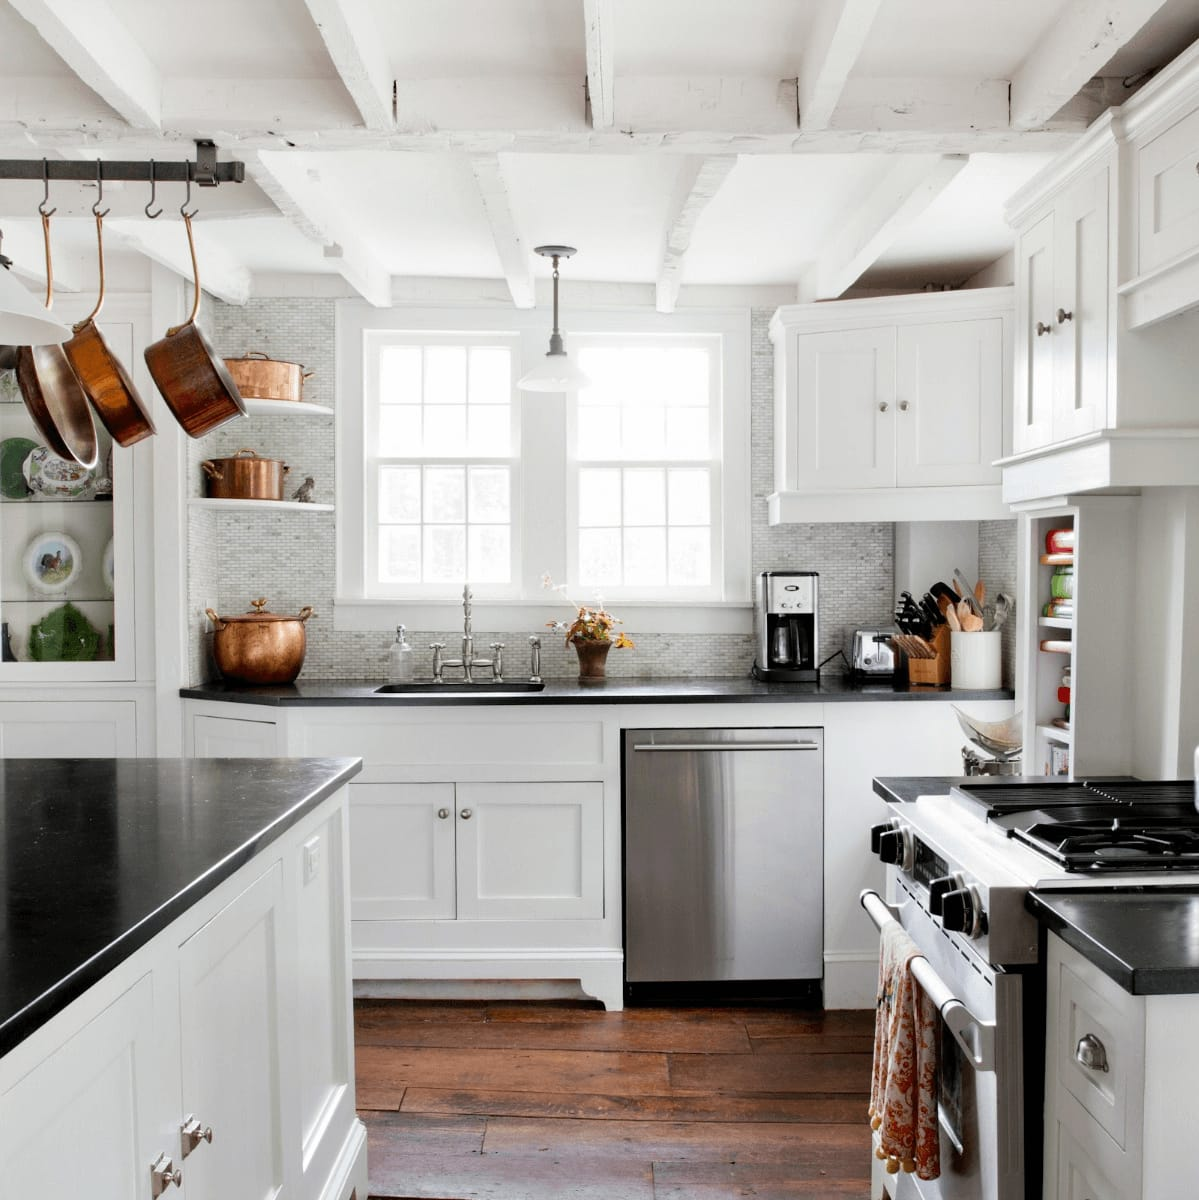 houzz kitchen 1 - Houzz Photos Kitchen